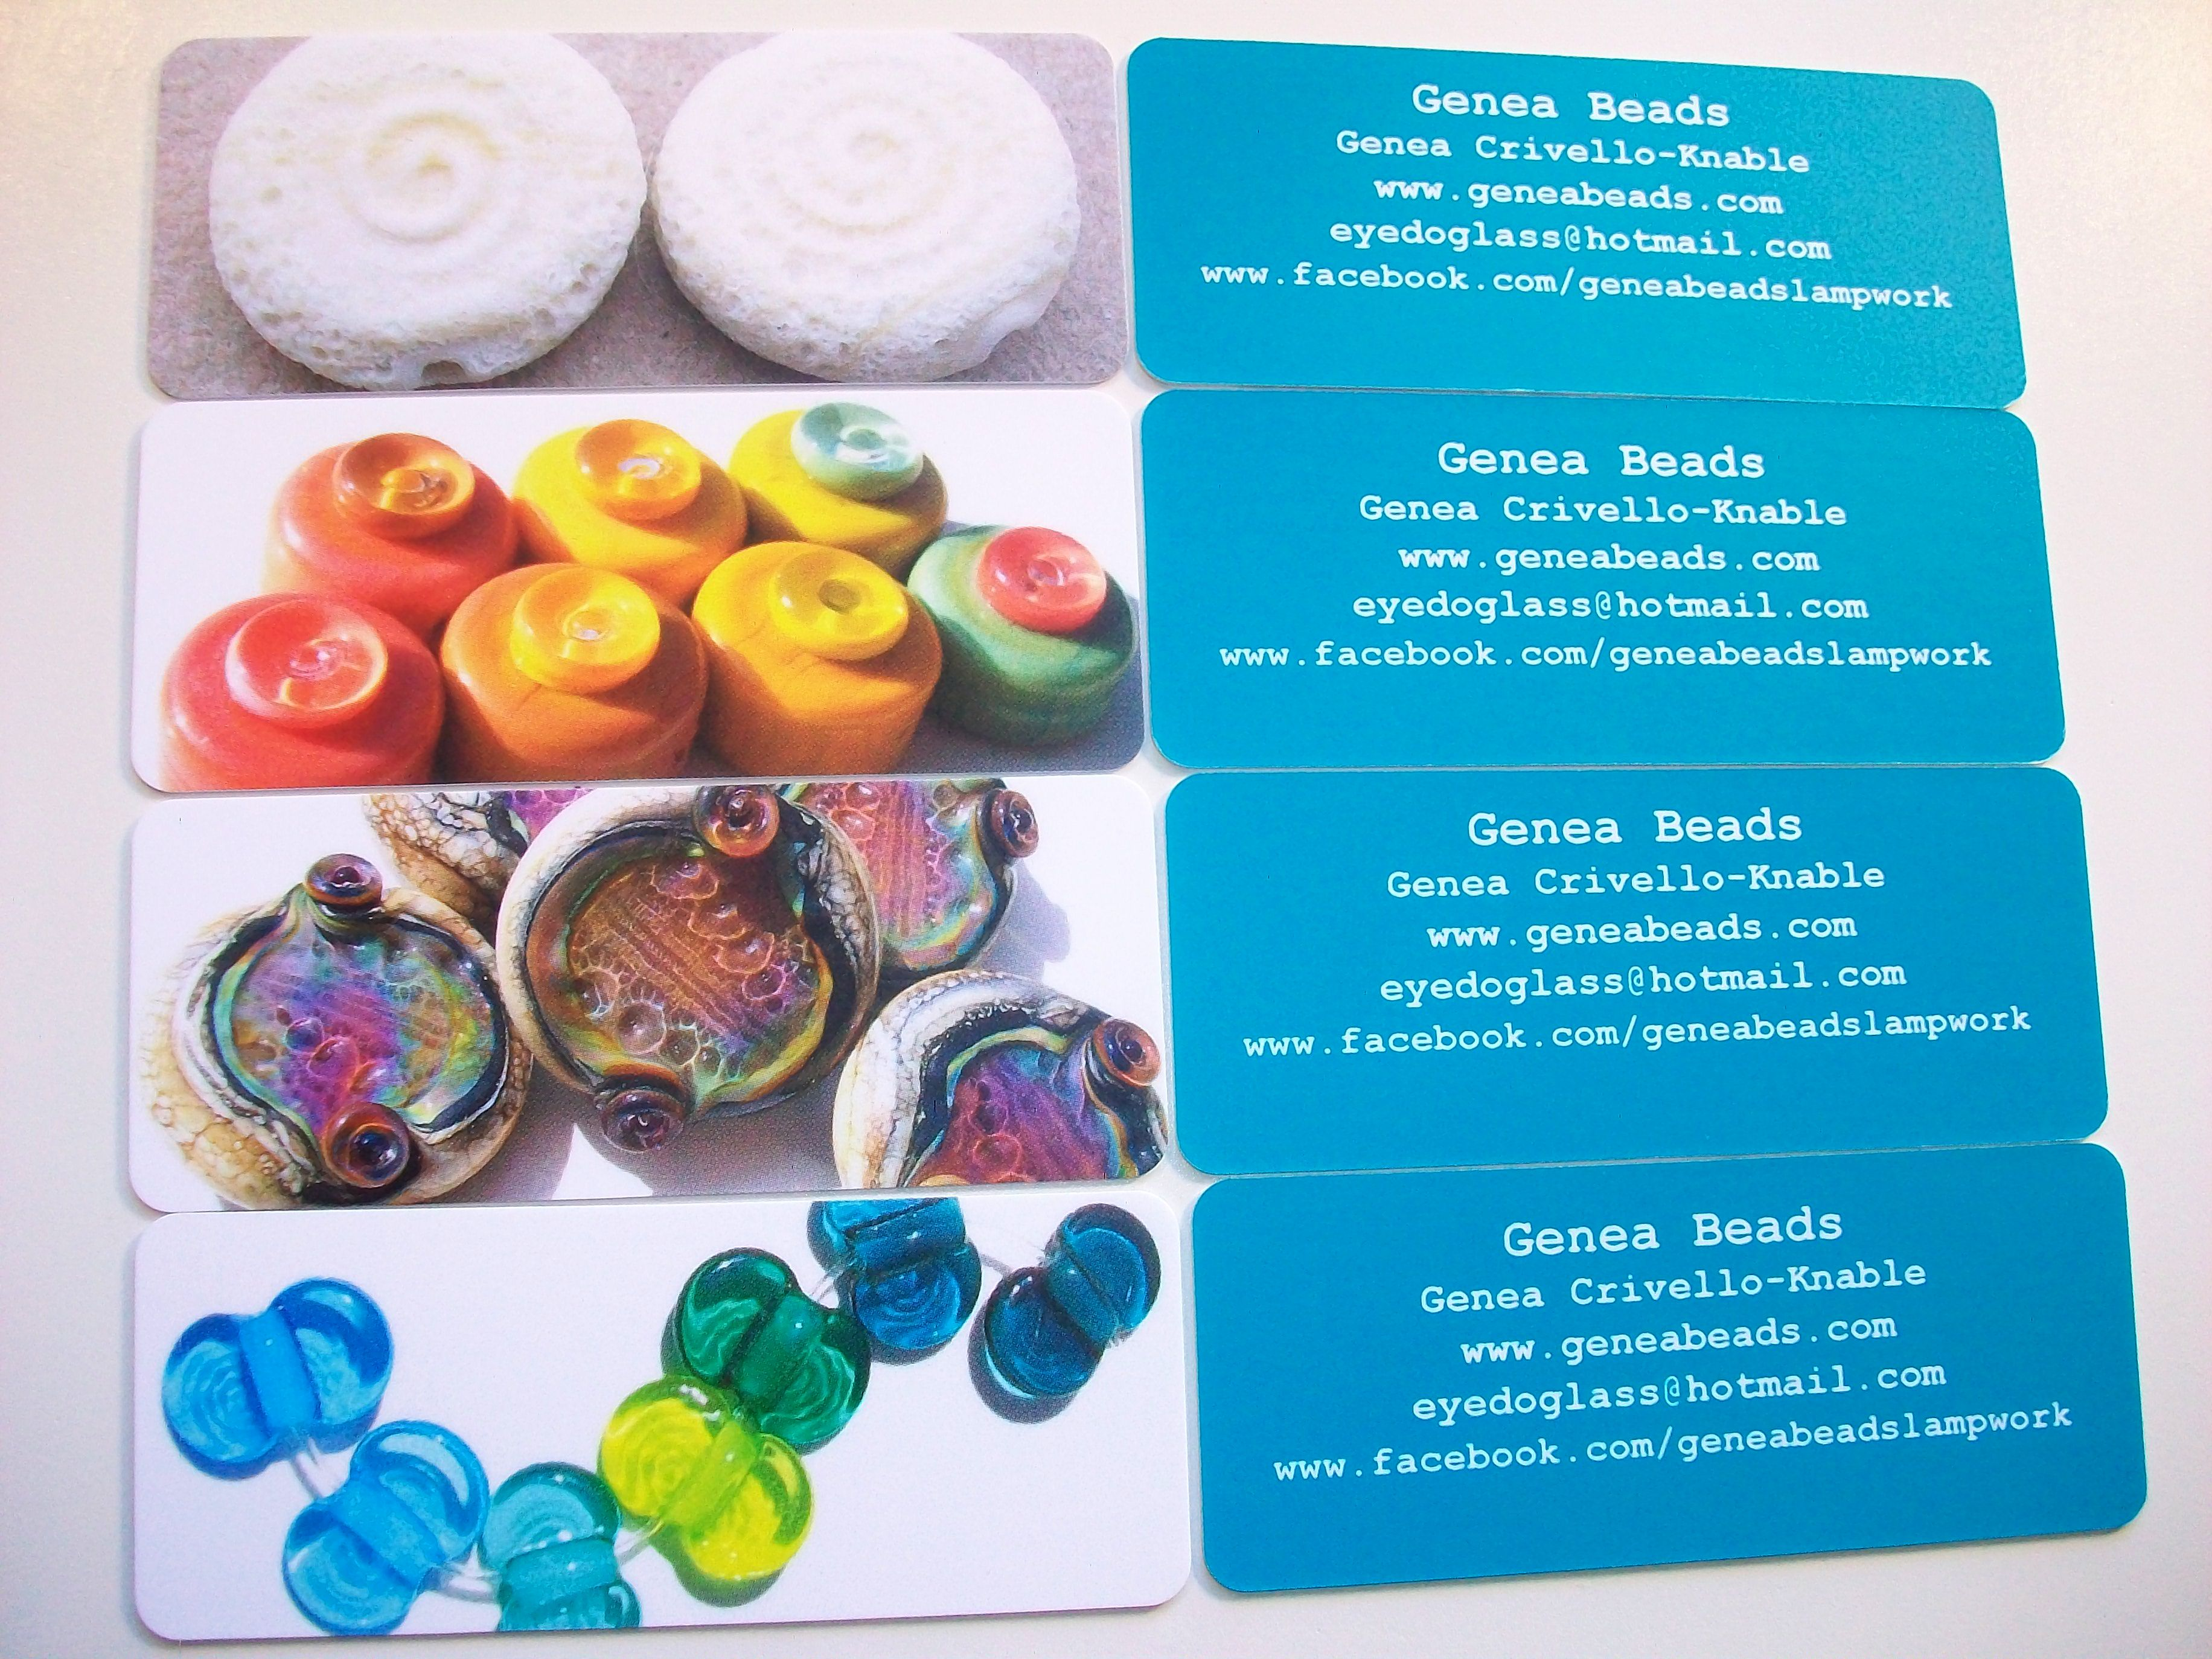 My new mini moo rounded corner business cards :D | Genea Beads ...